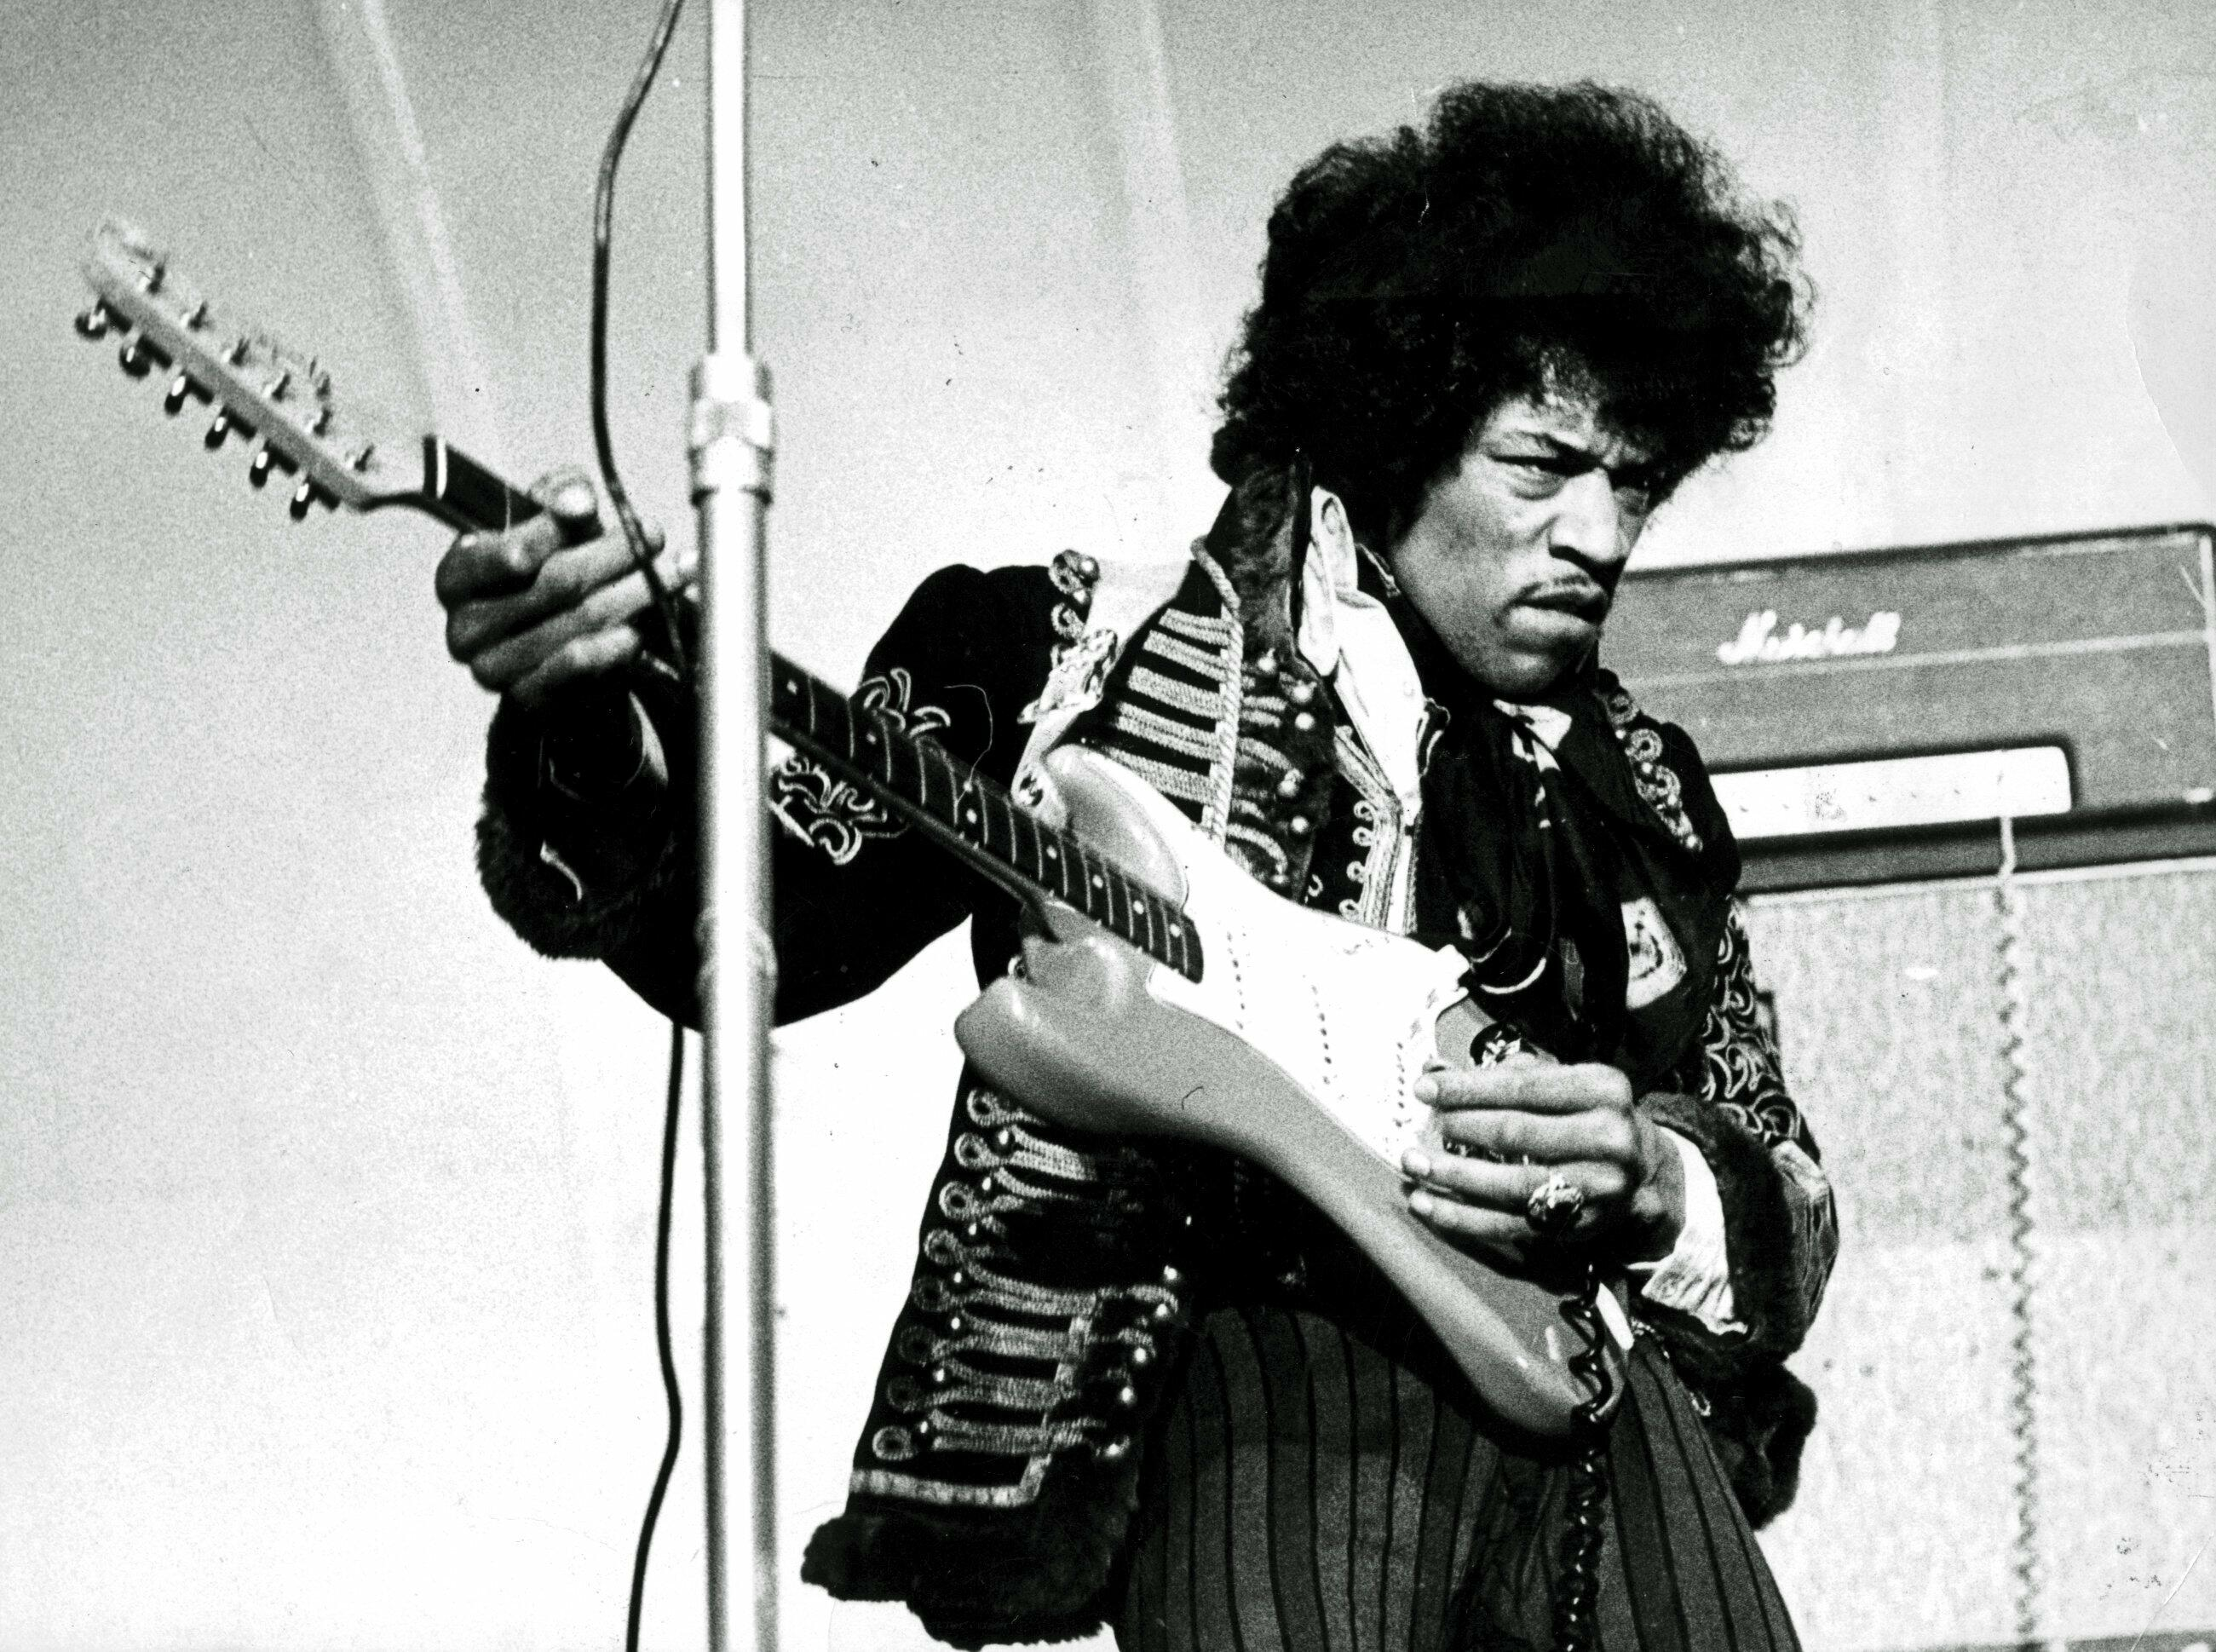 File:Jimi Hendrix 1967 uncropped.jpg